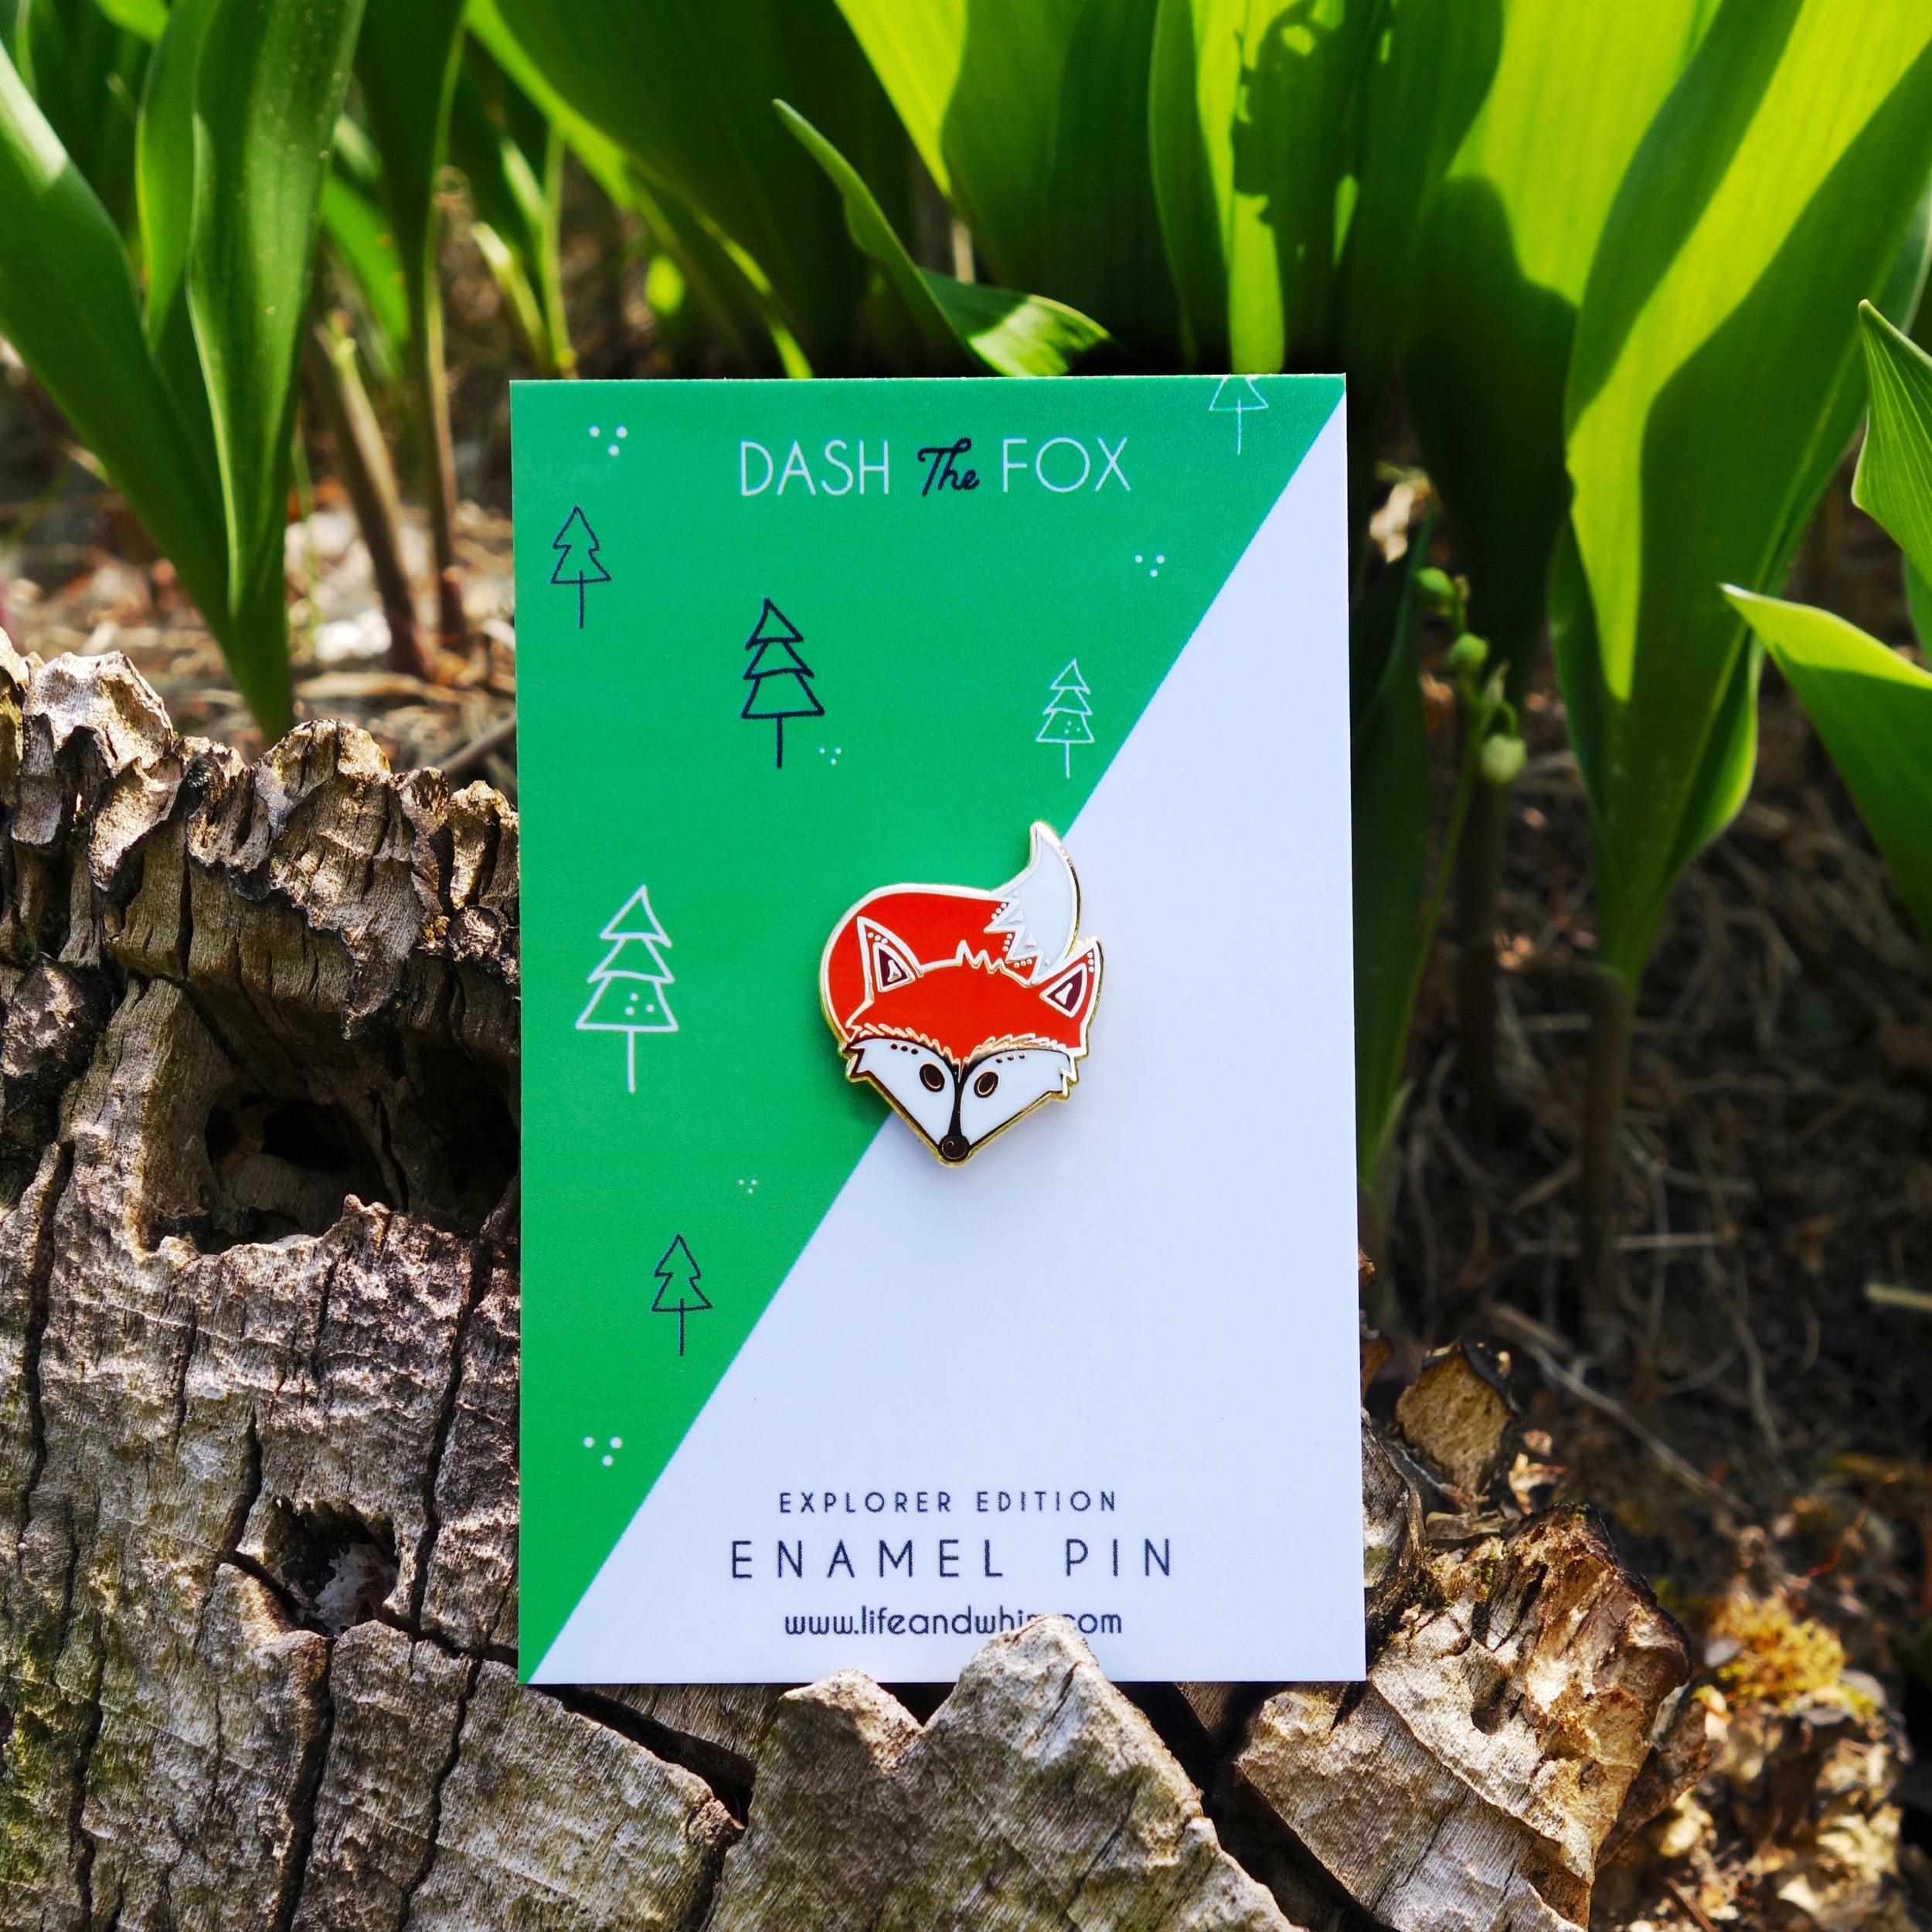 Enamel Pins - Our Northern-Michigan inspired hard enamel pins can be worn on lapels, jackets, hats, bags – really anywhere you want to add a bit of flair, fun and style to an outfit or accessory.